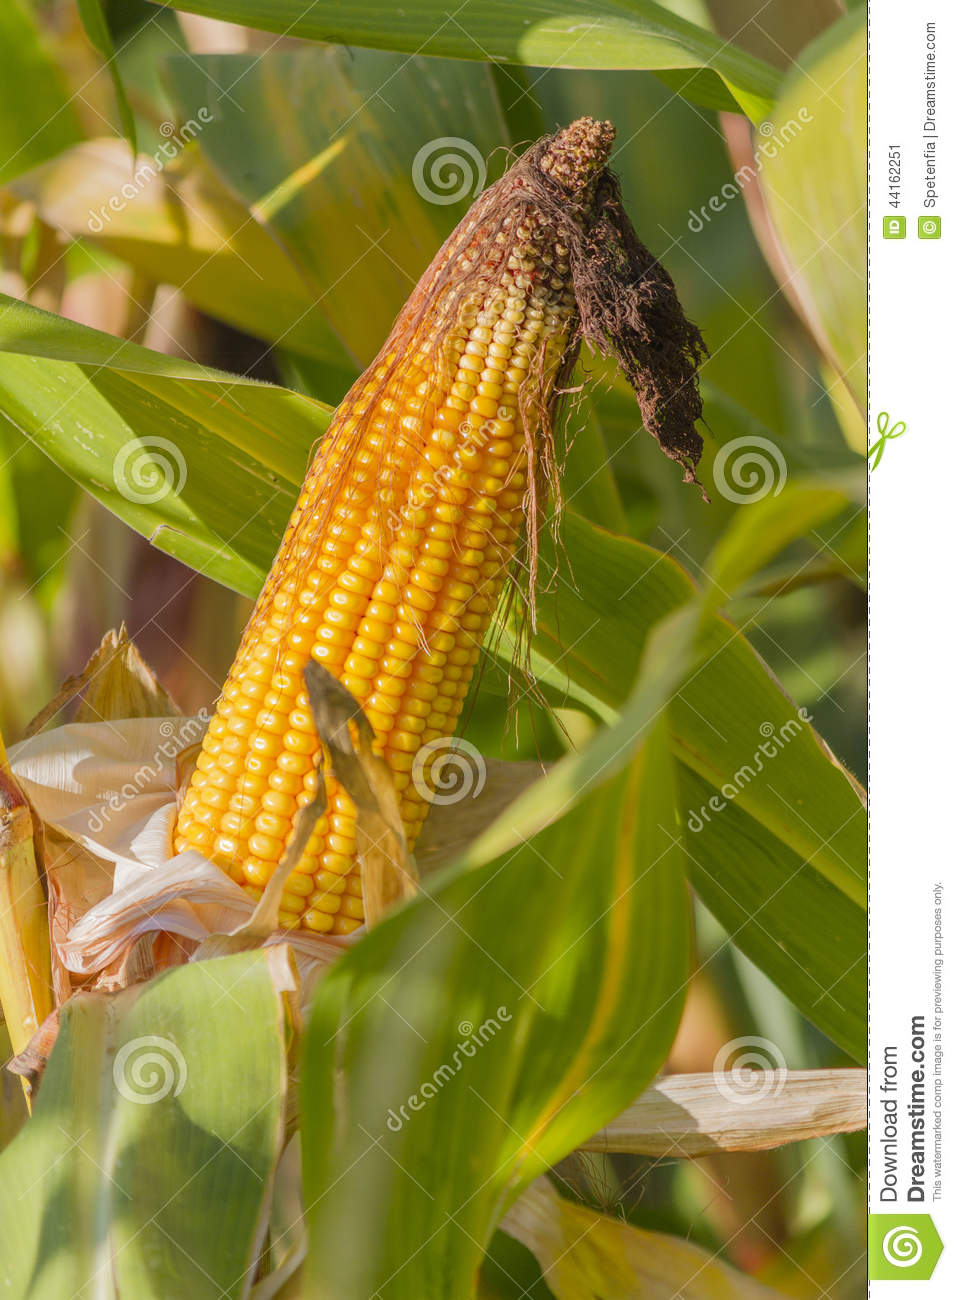 how to cook field corn on the cob